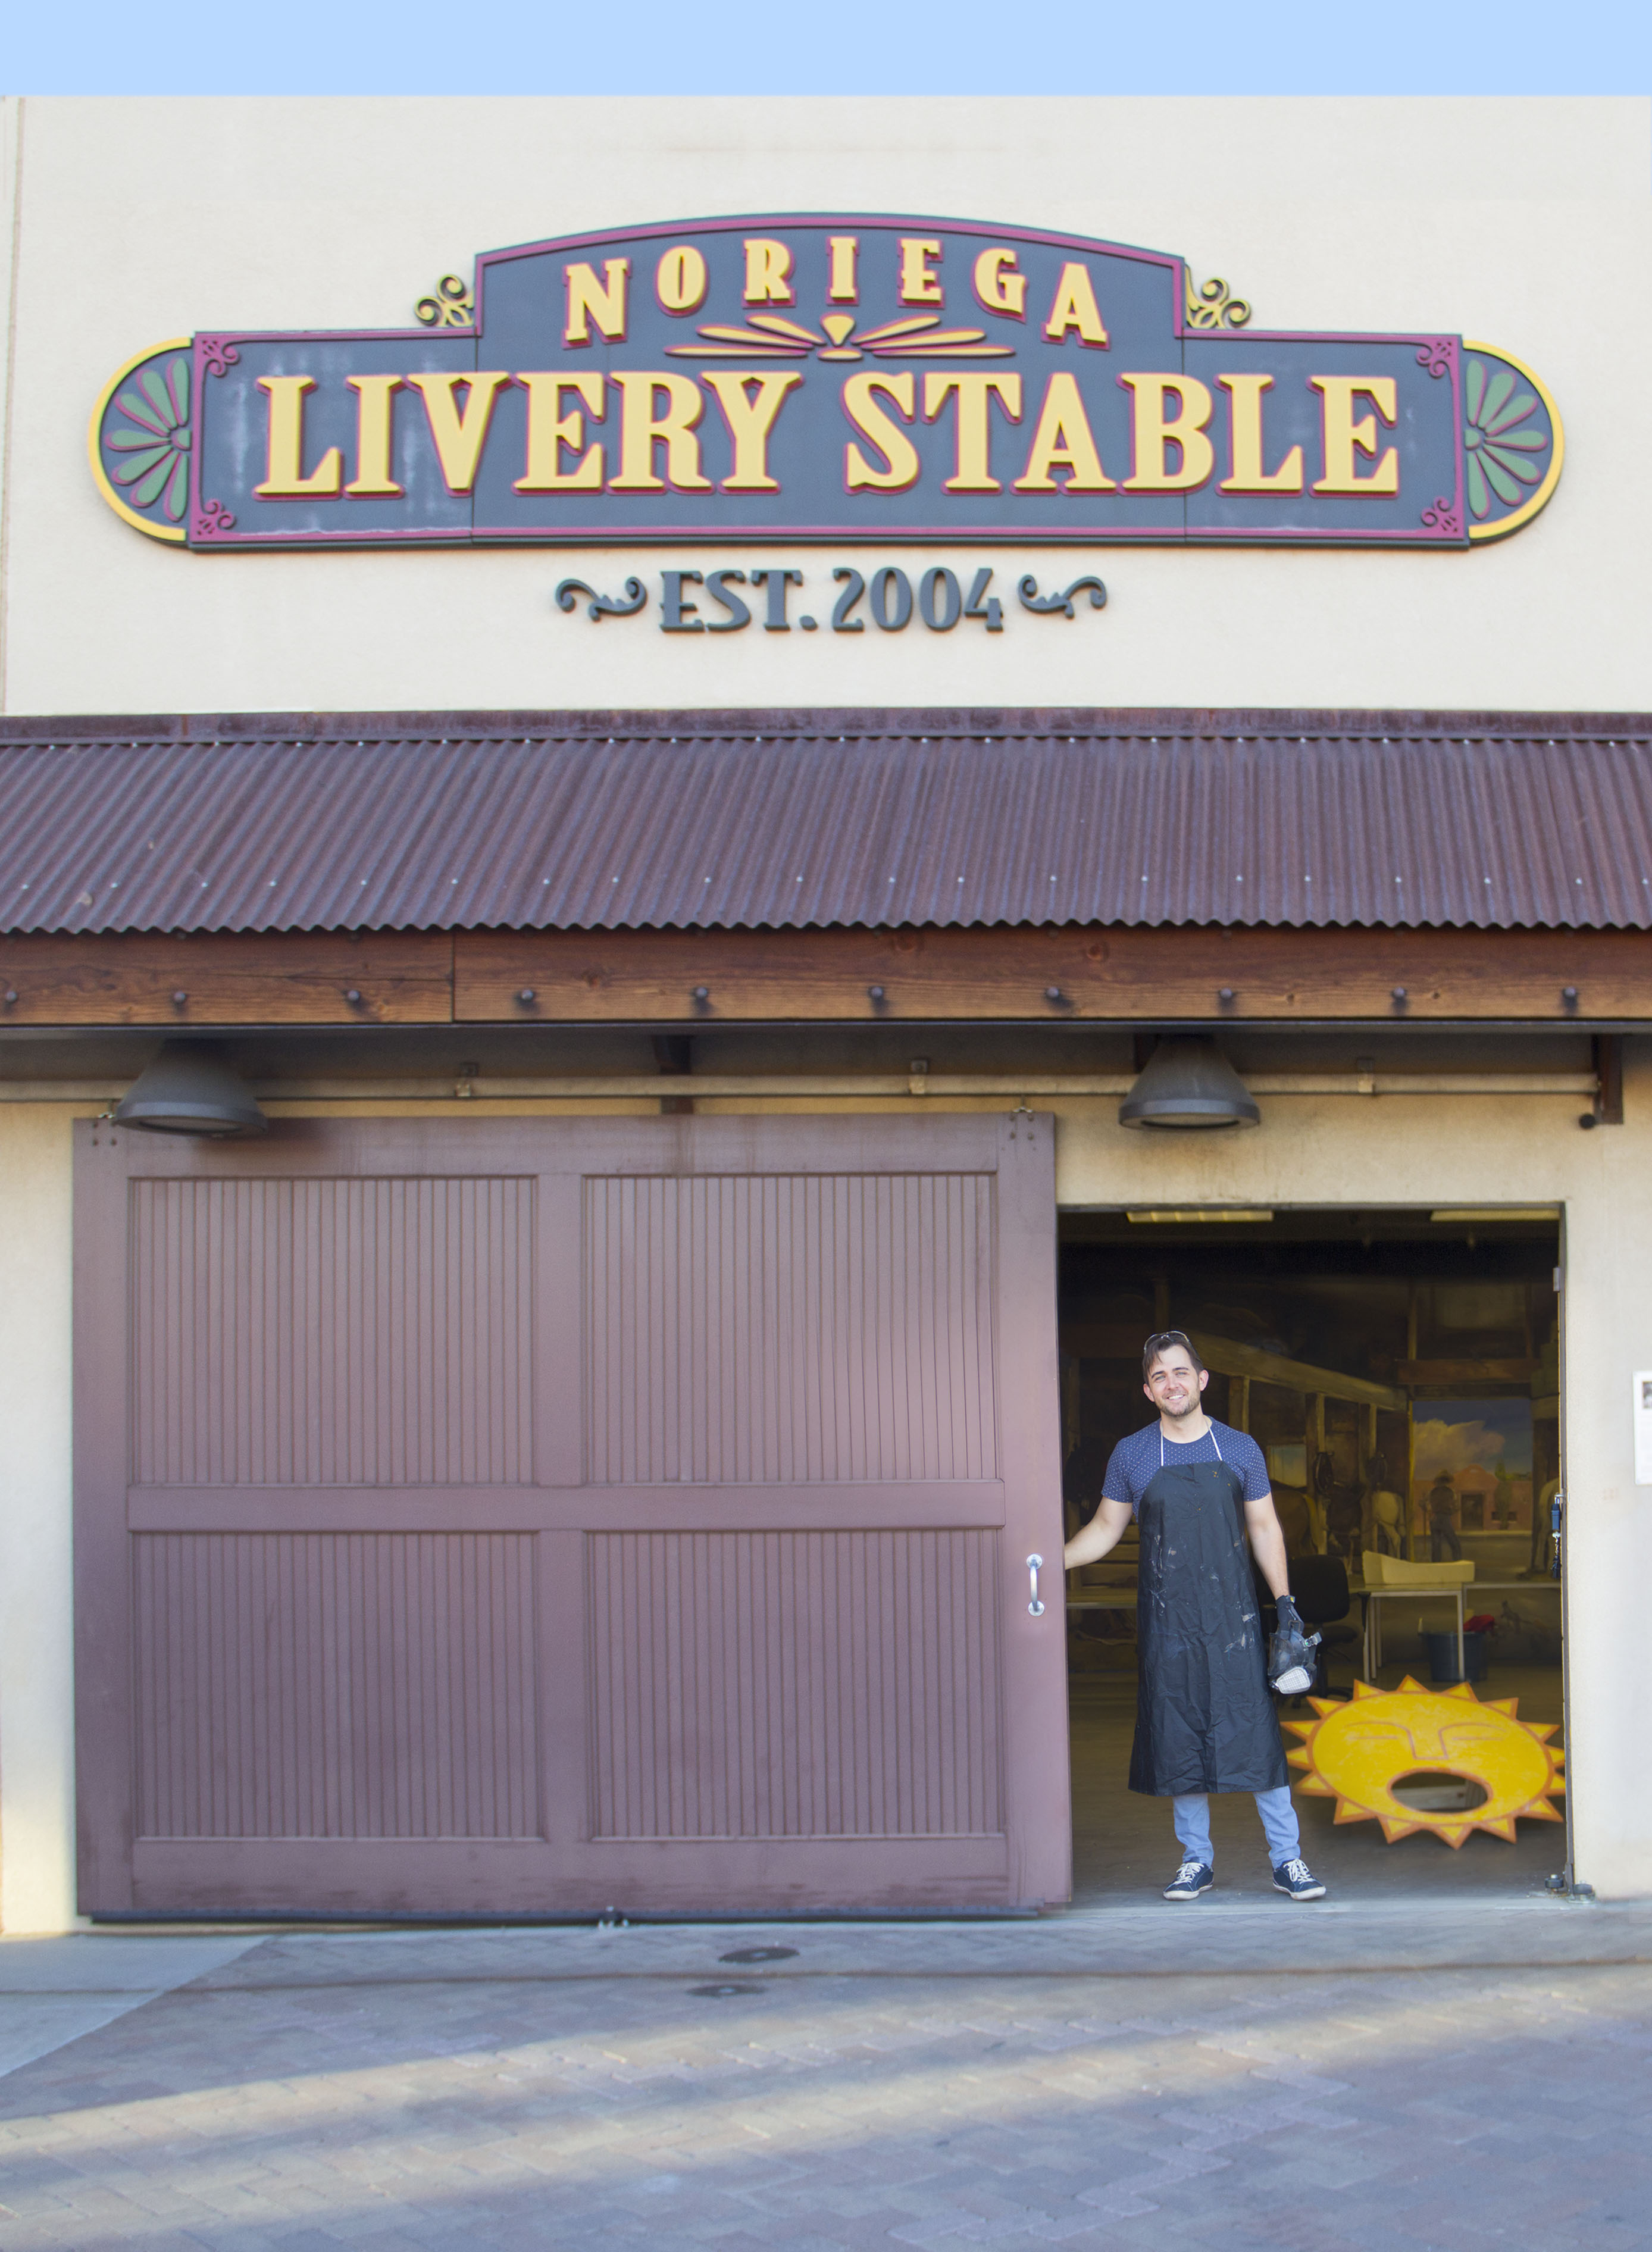 lewis livery oustide livery stable